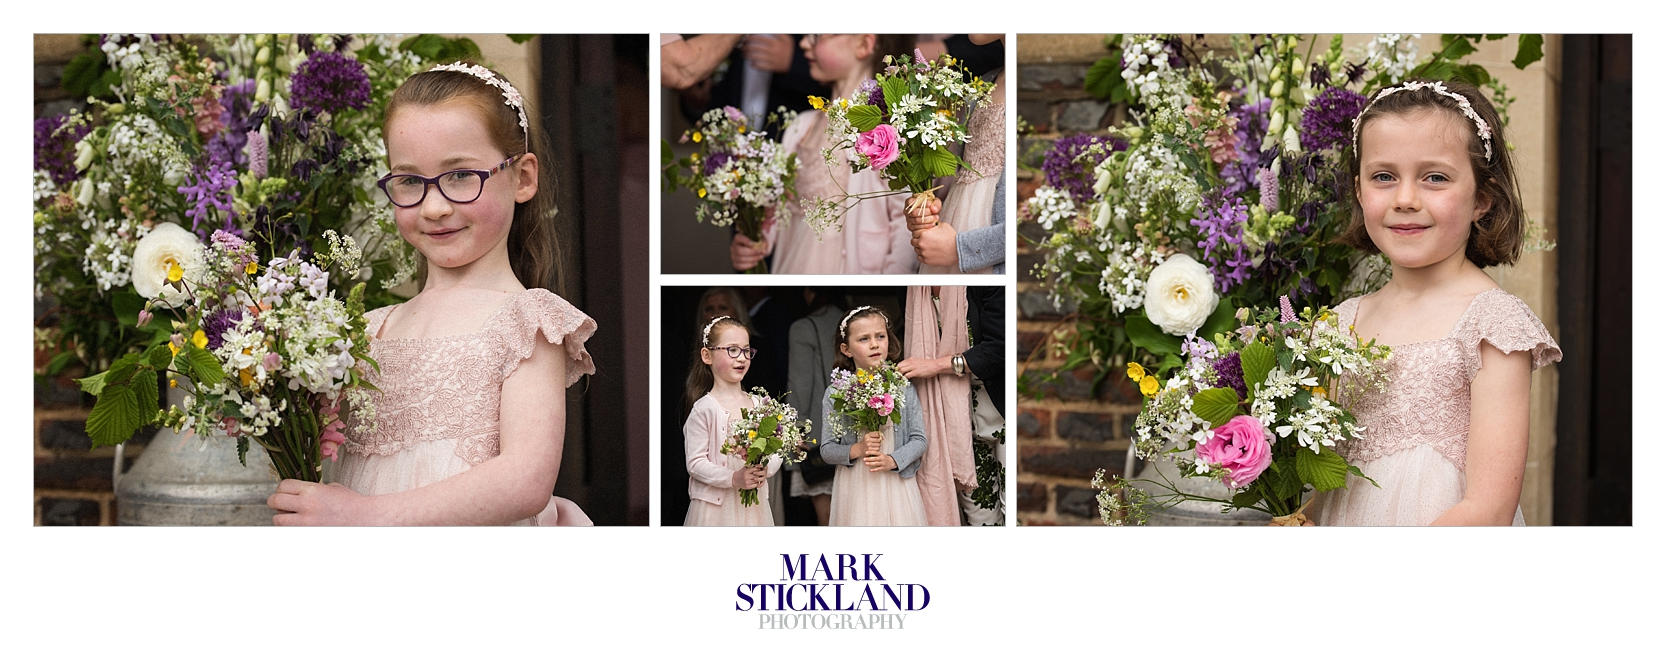 06.micklesfield hall_sarratt_wedding_mark stickland photography